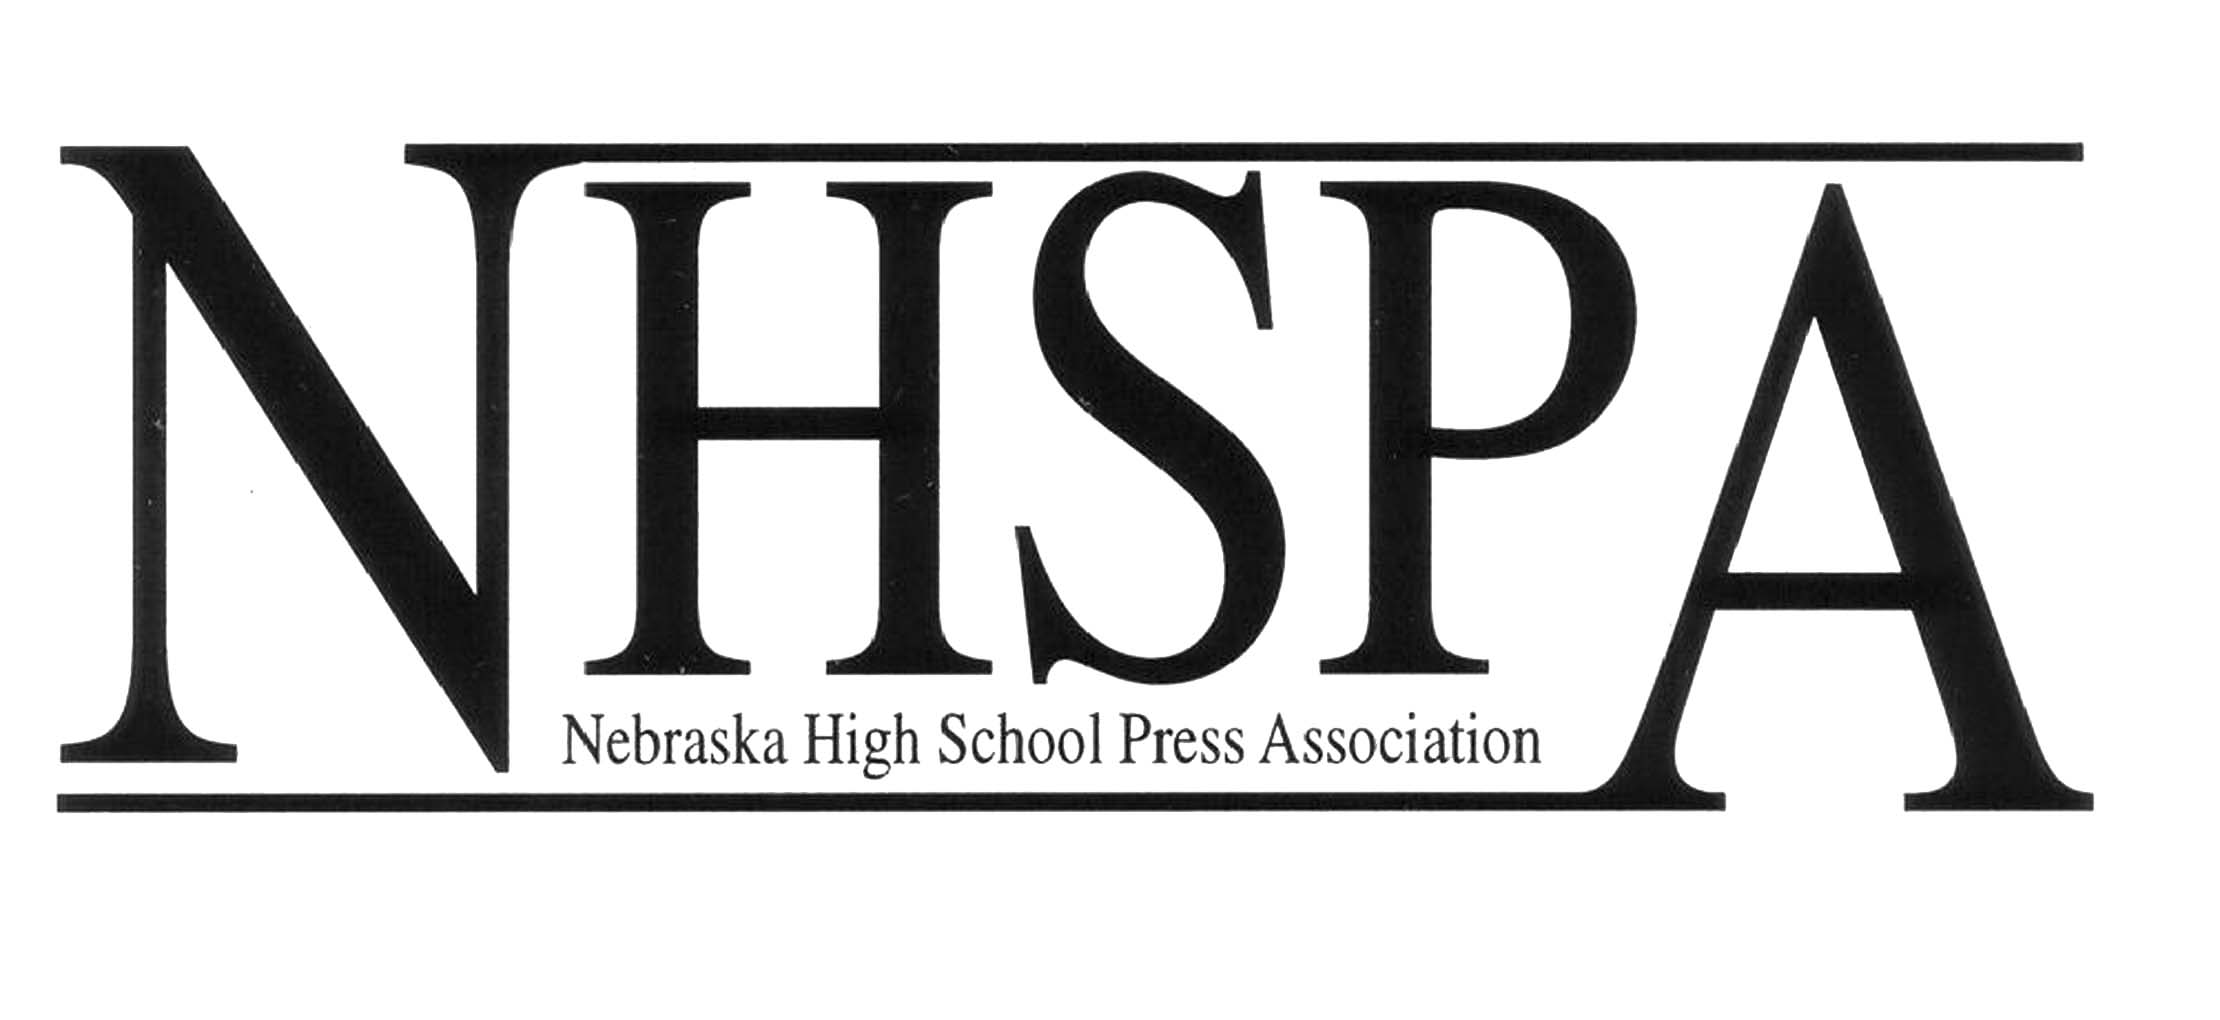 Nebraska High School Press Association Image